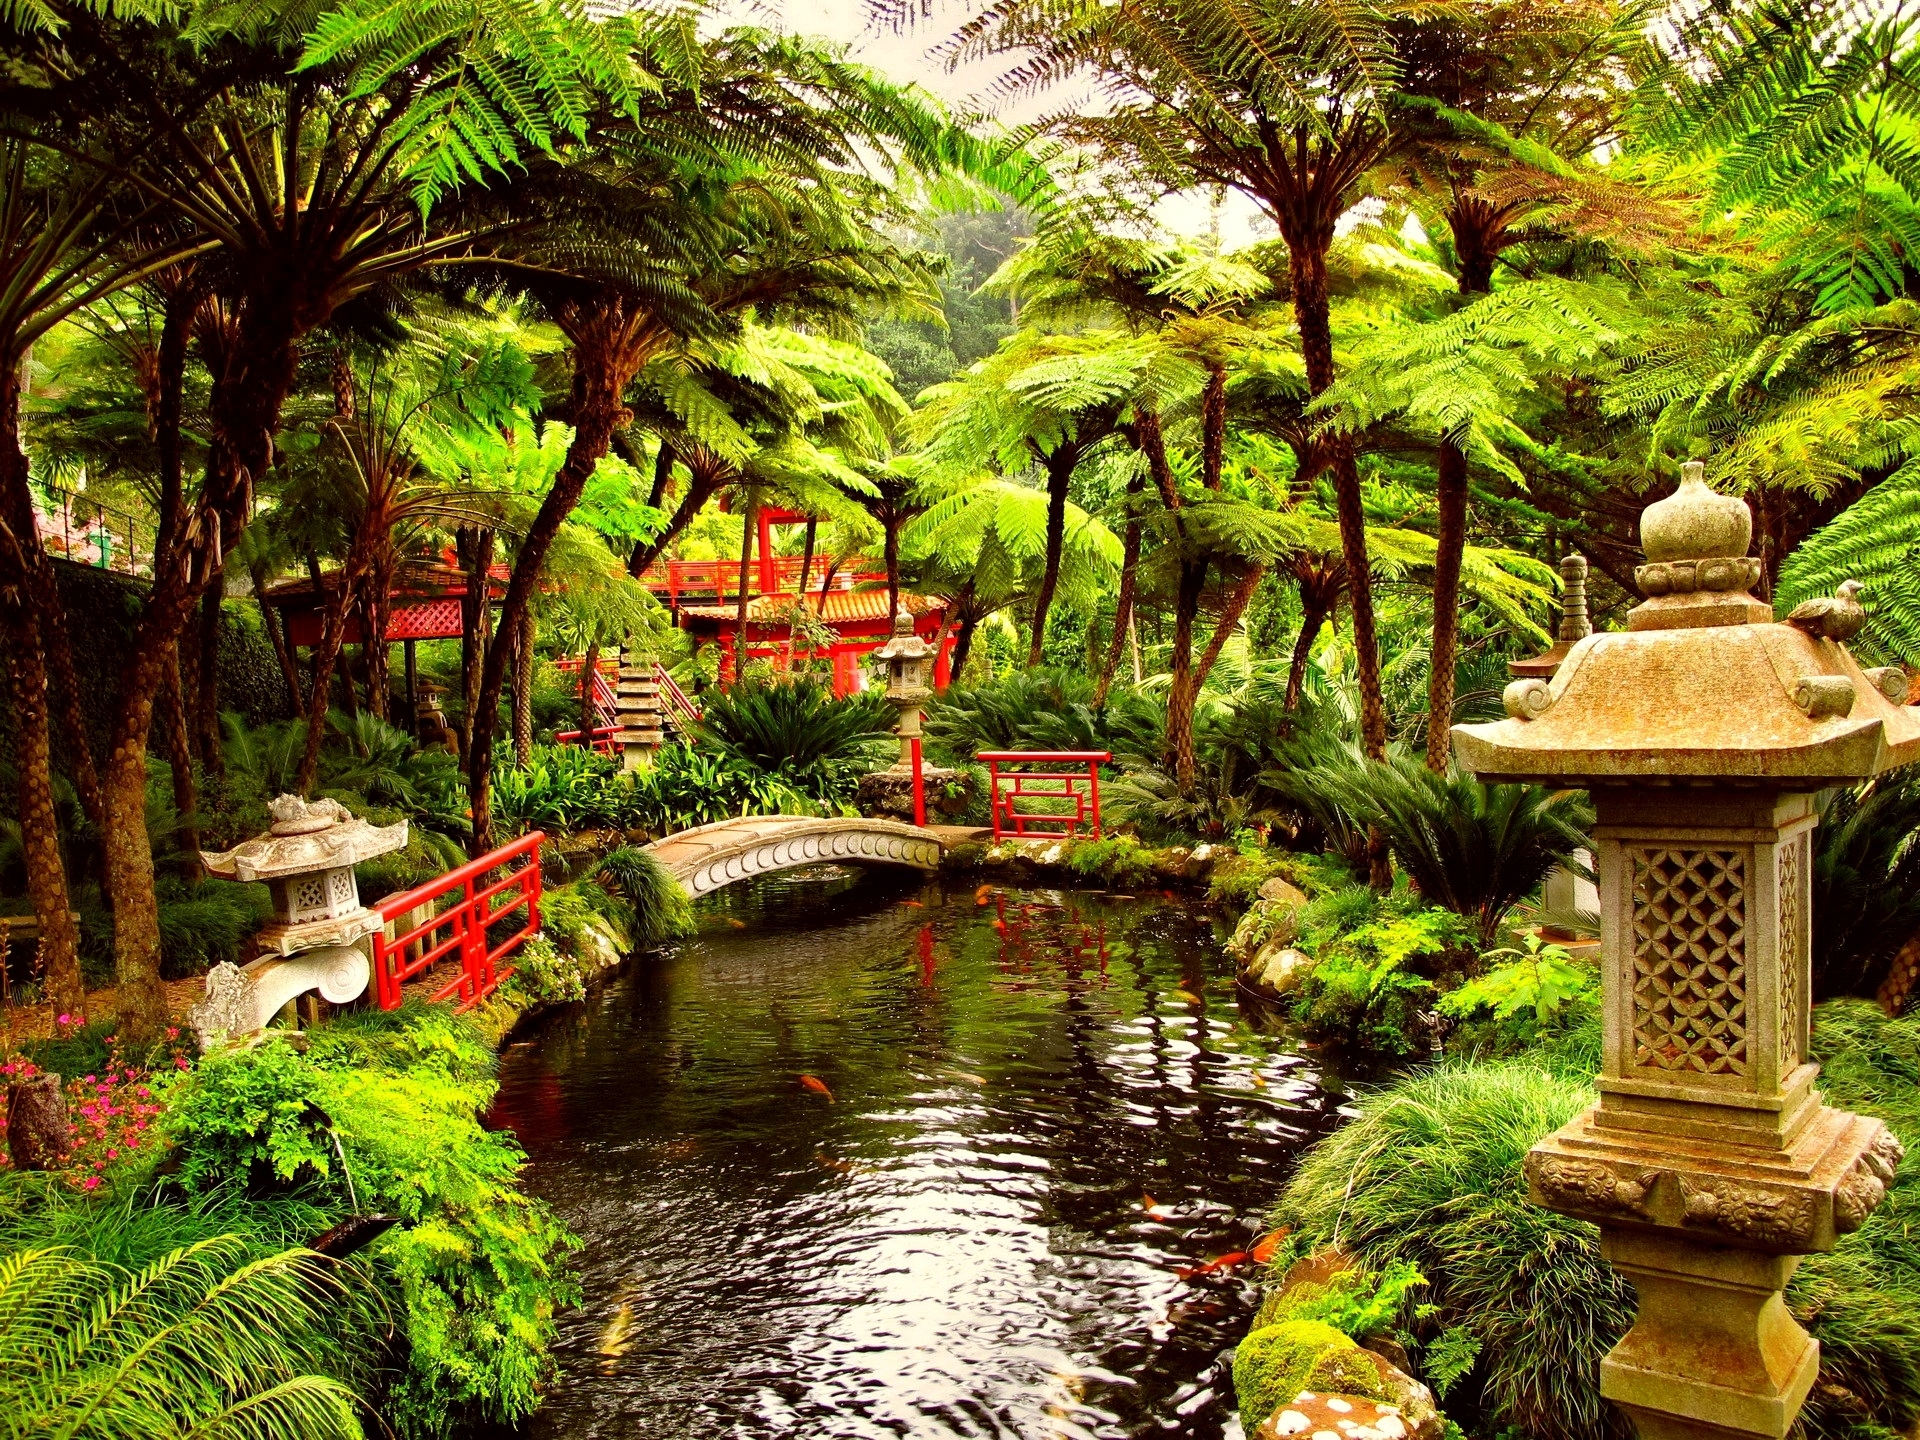 10 Best Hd Japanese Garden Wallpaper FULL HD 1920×1080 For PC Desktop